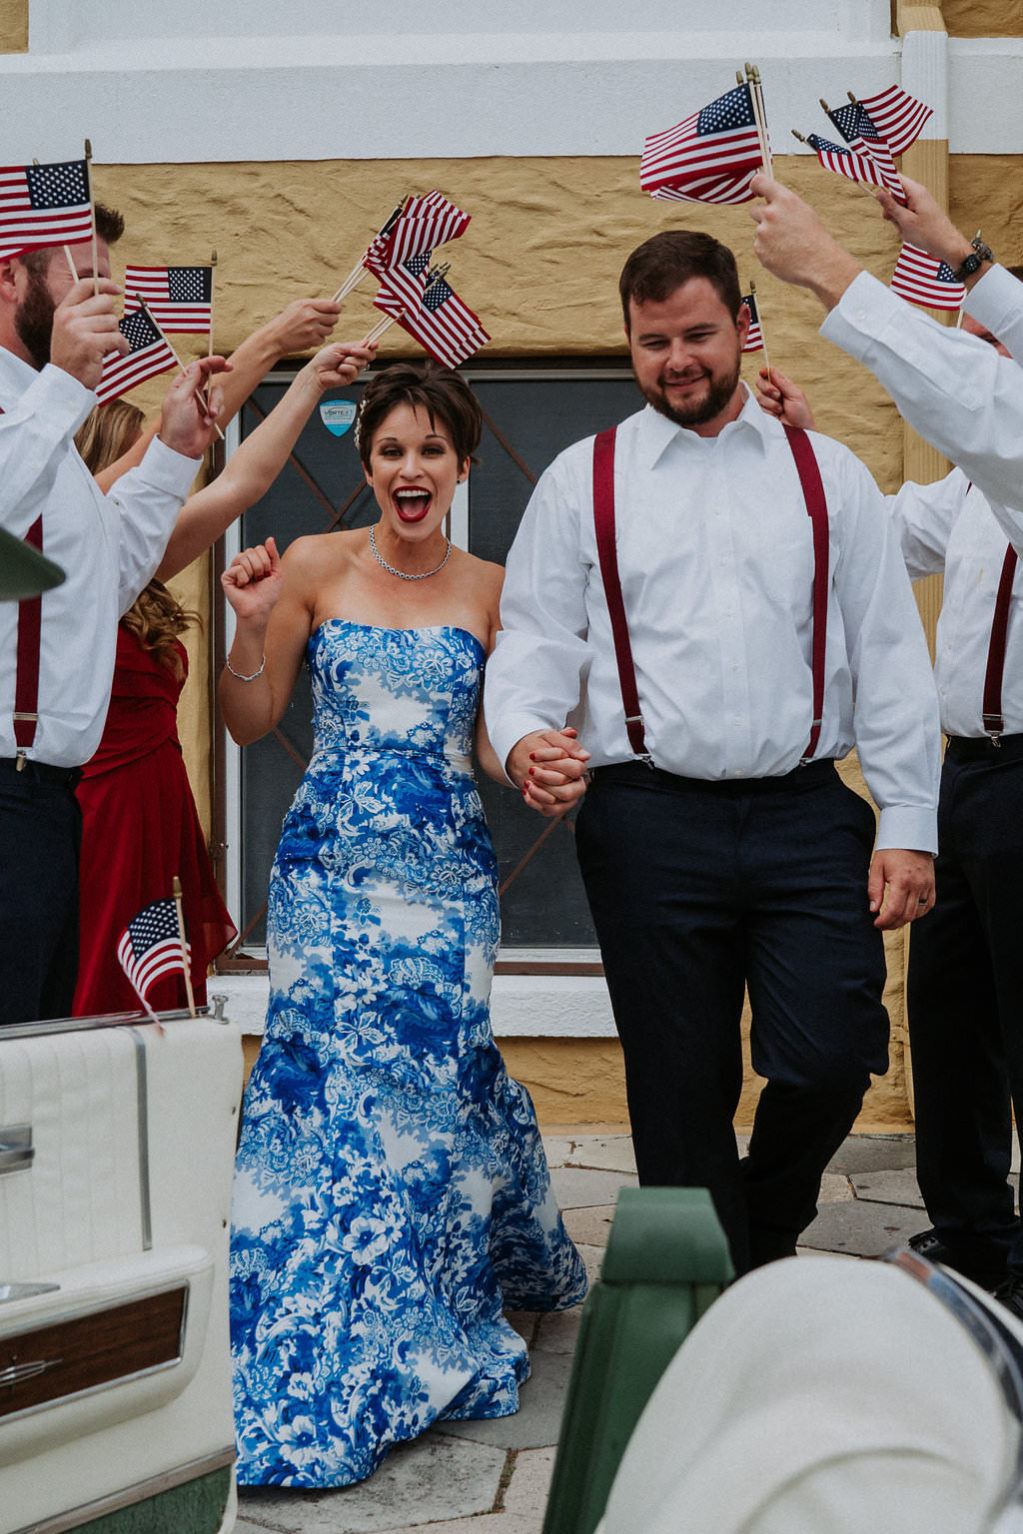 Red, White and Blue Americana Fourth of July Inspired Holiday Wedding with American Flag Exit